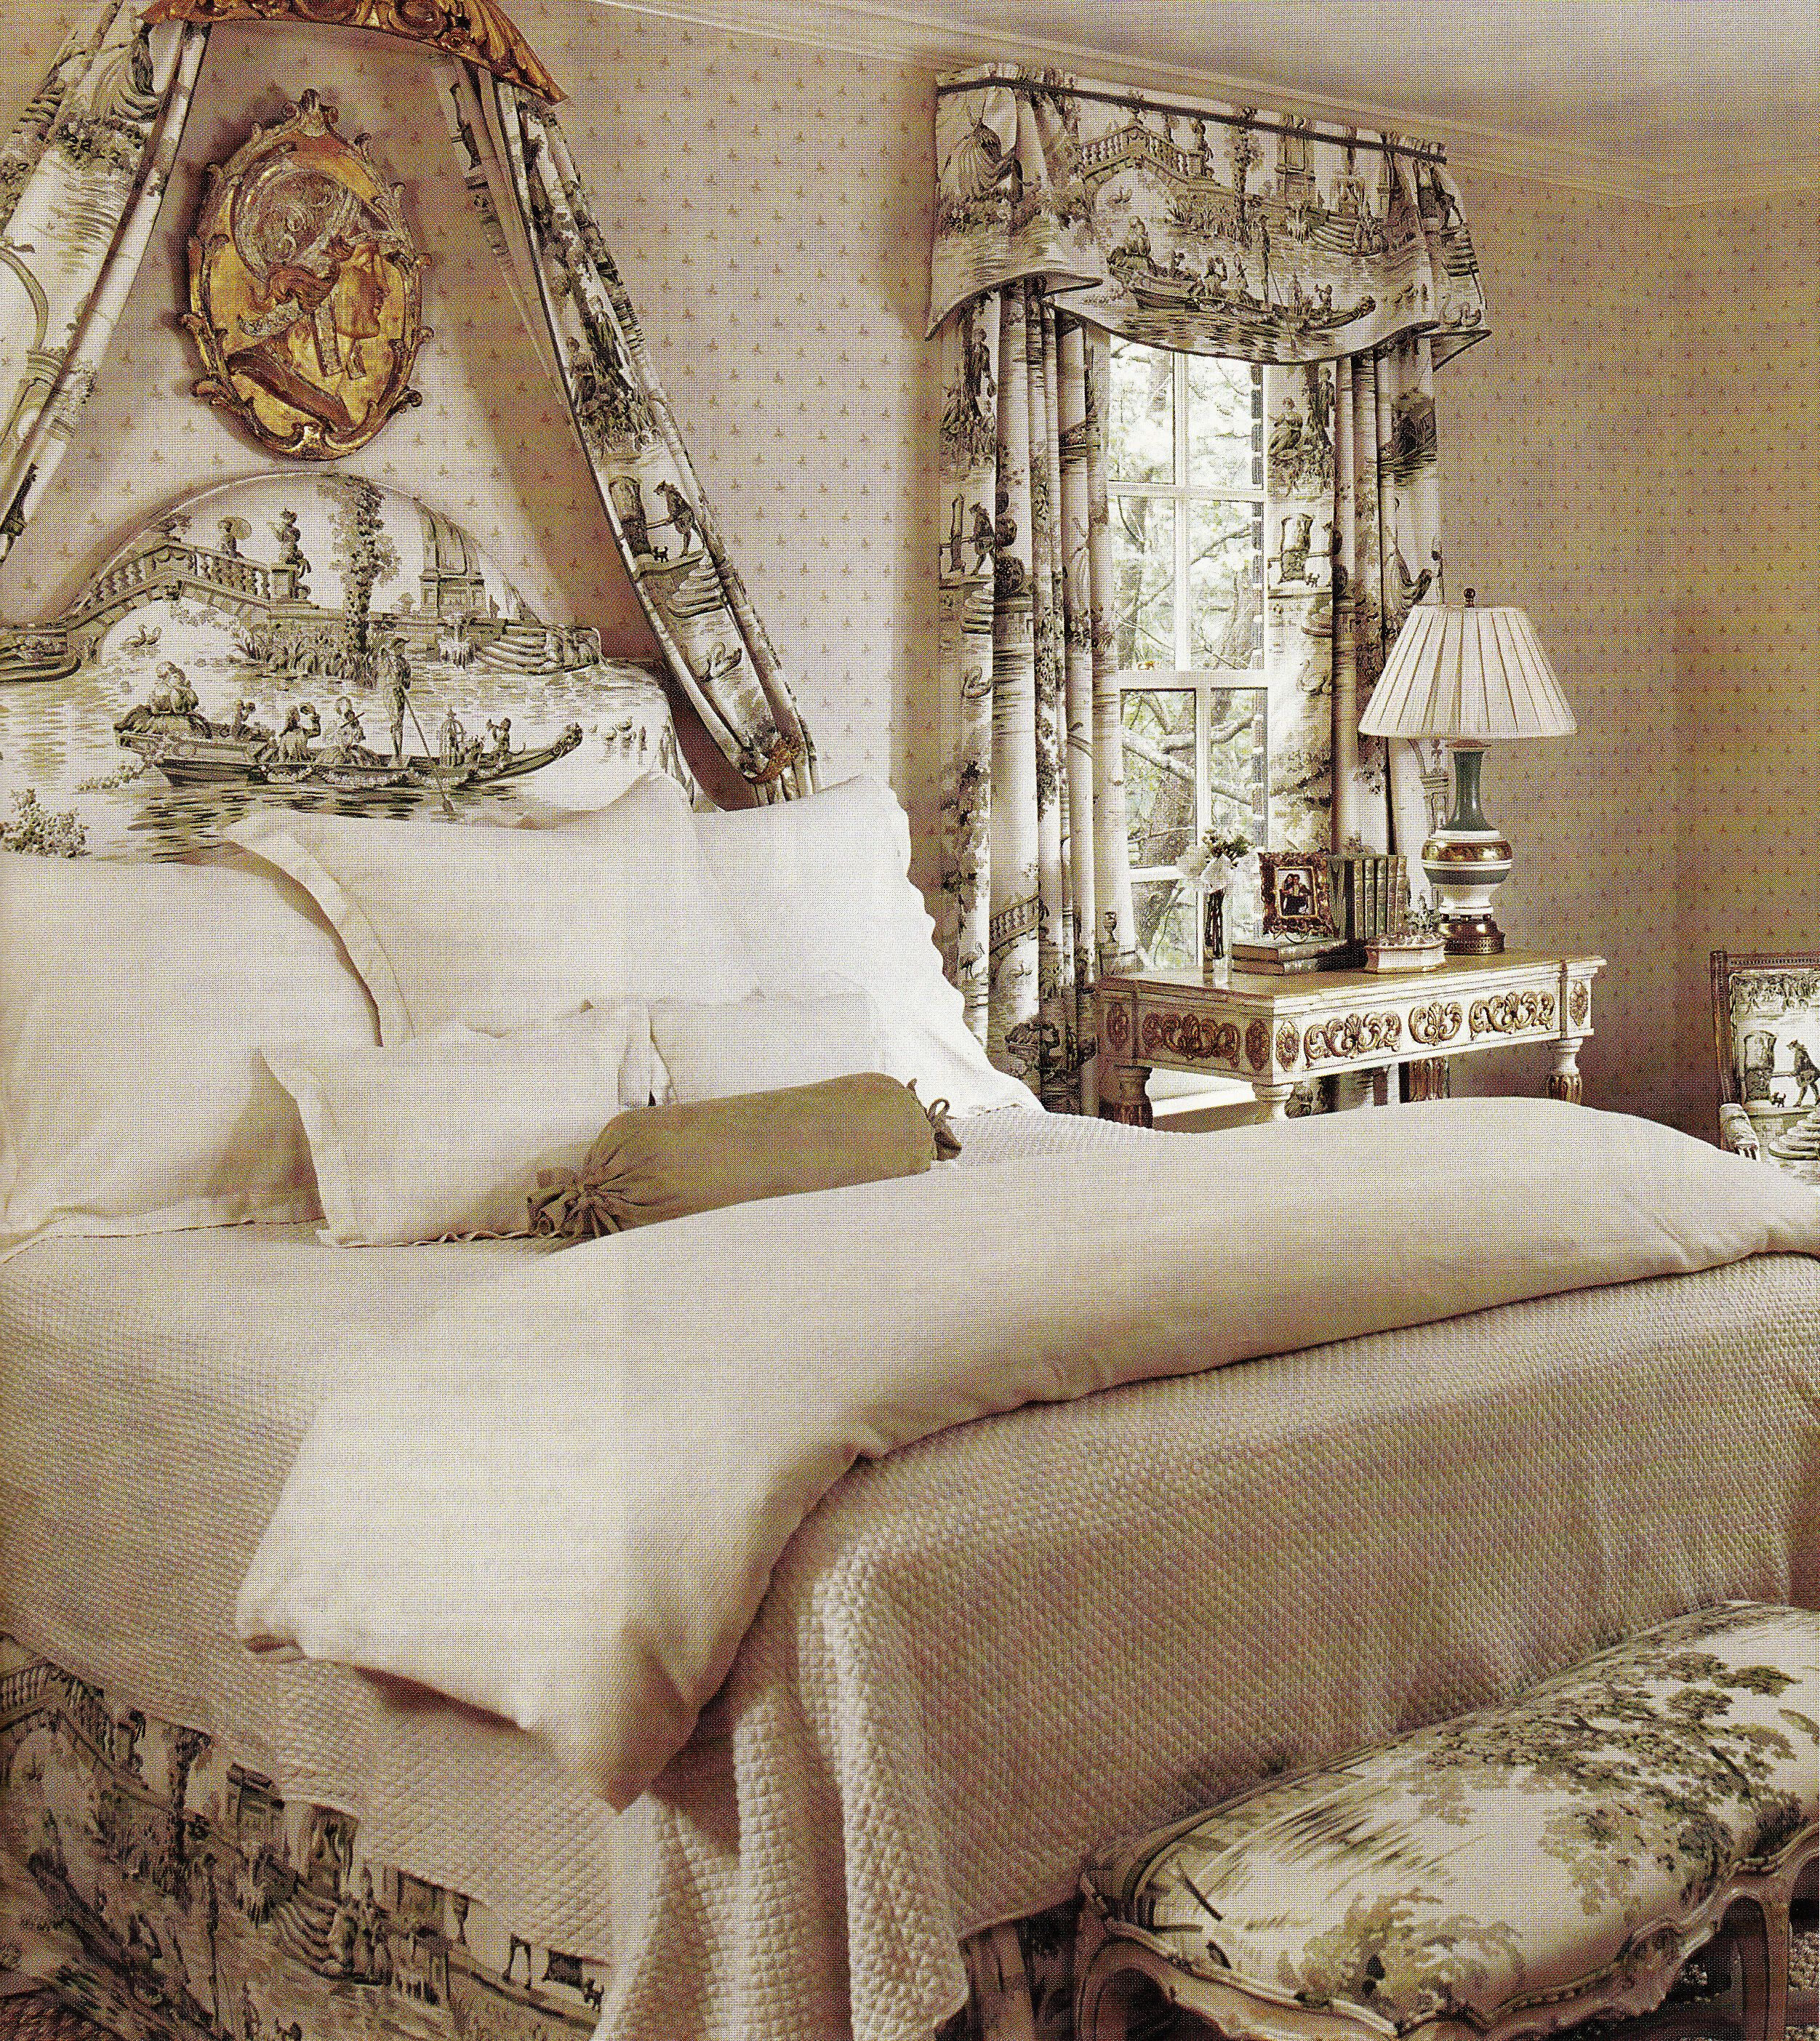 Bedroom Decorating Ideas Totally Toile: What Would Kipper Think If He Came Back And This Was Our